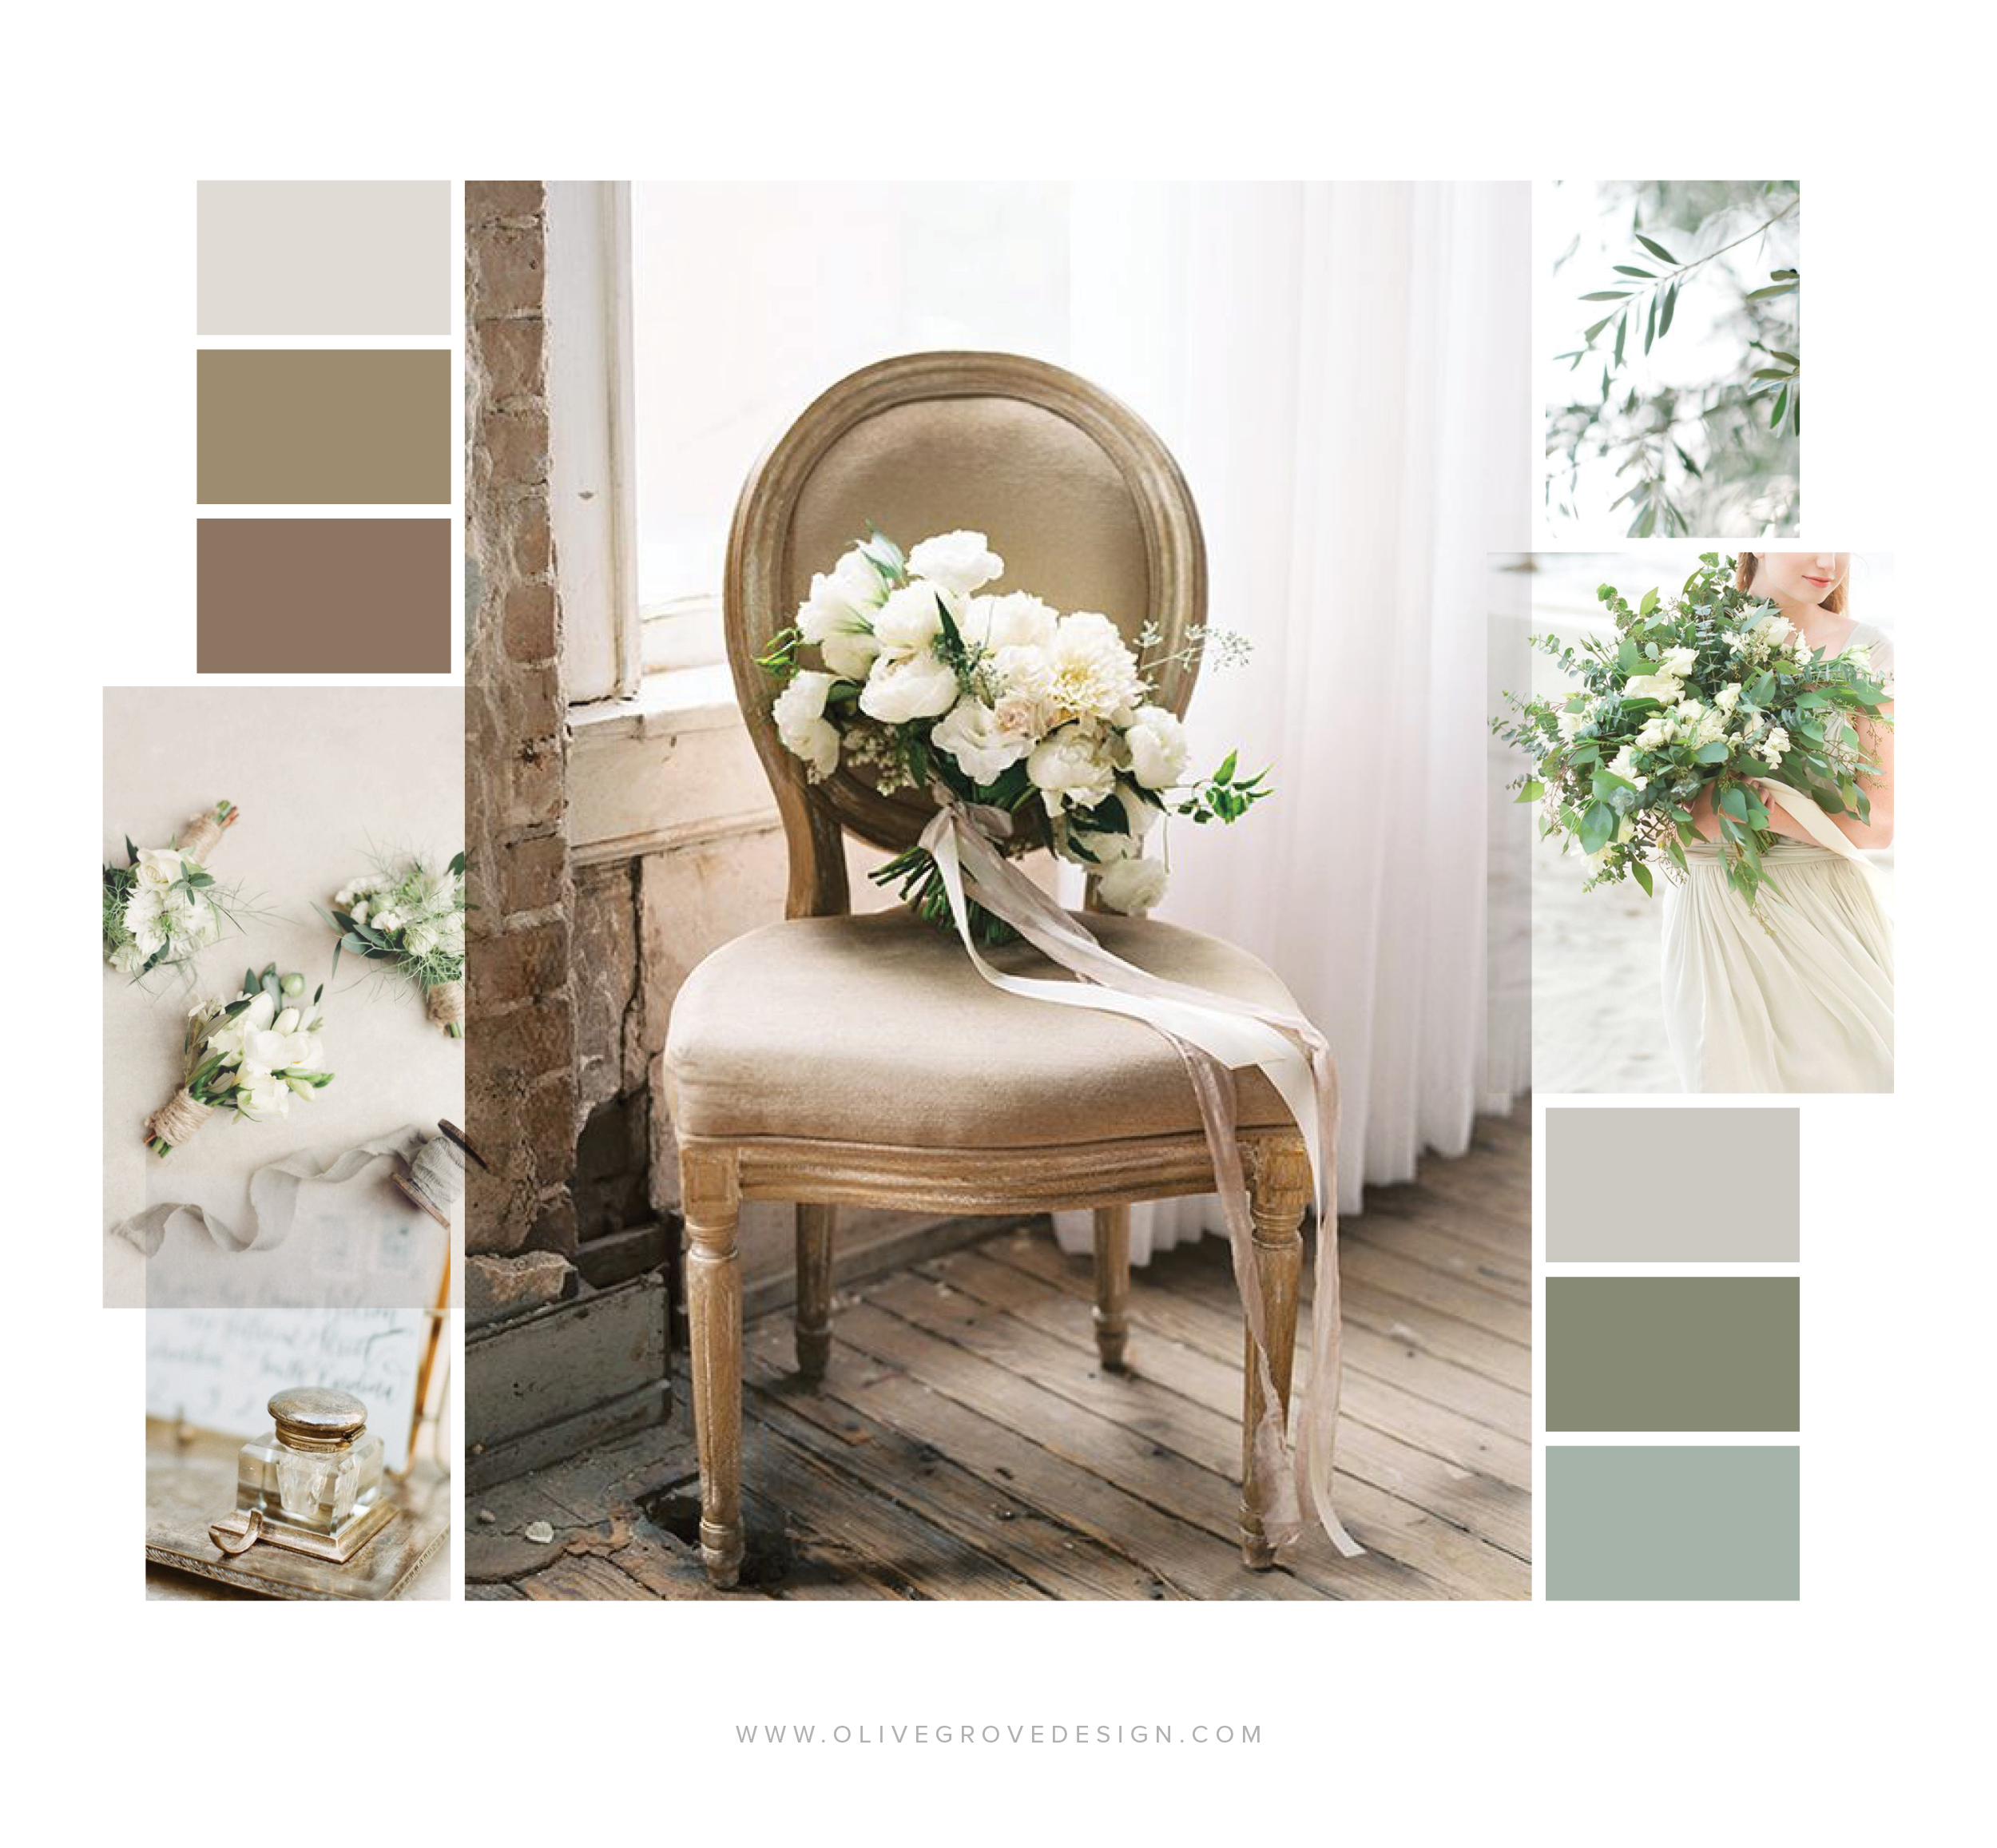 Natural Floral Design | Olive Grove Design